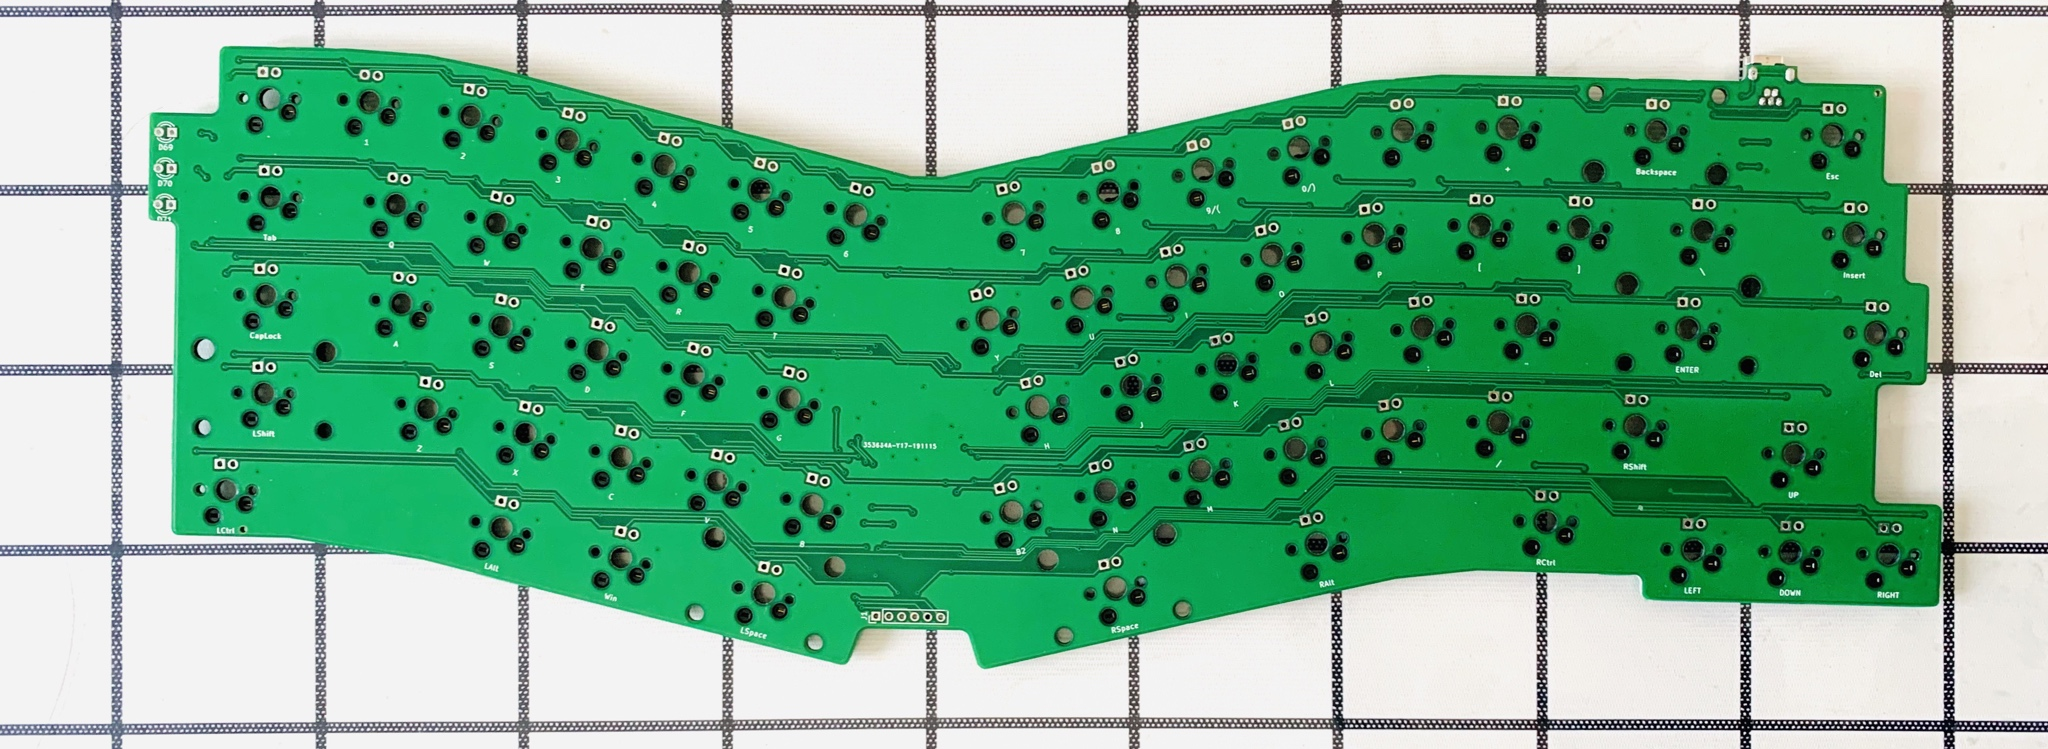 Wm1 front side of Pcb